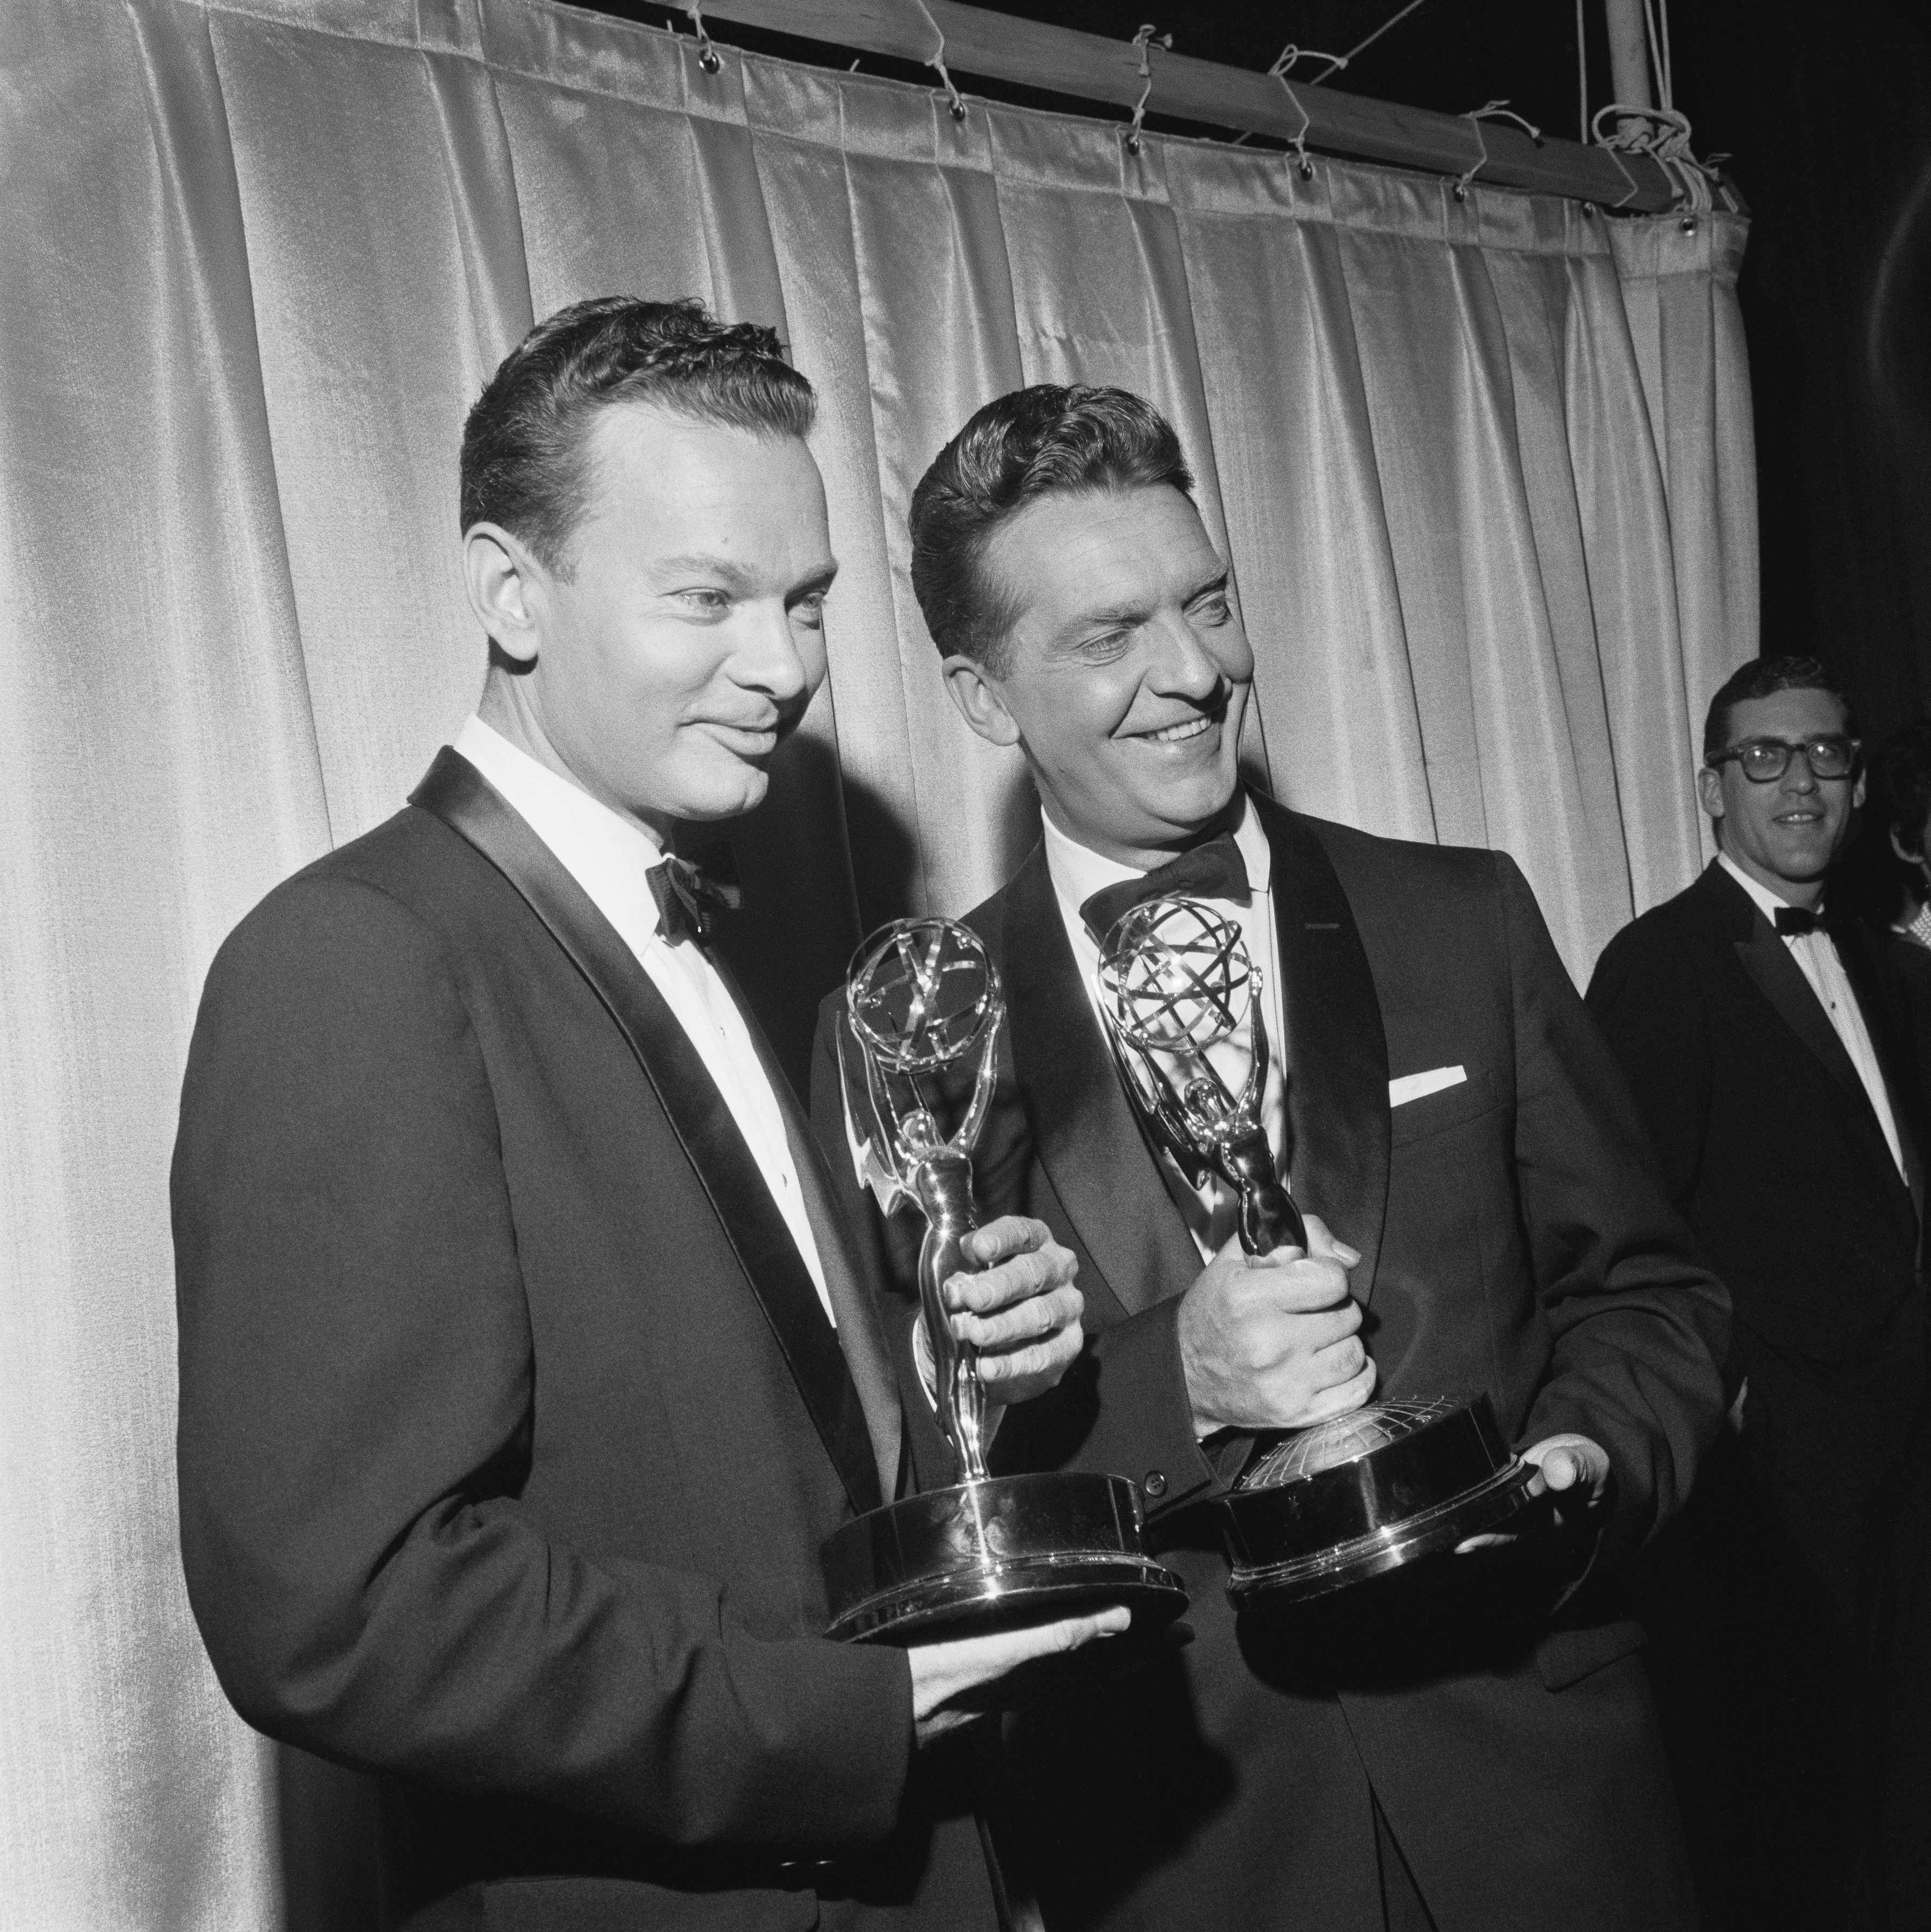 Anchors with awards for The Huntley-Brinkley Report television show (1956-1970).